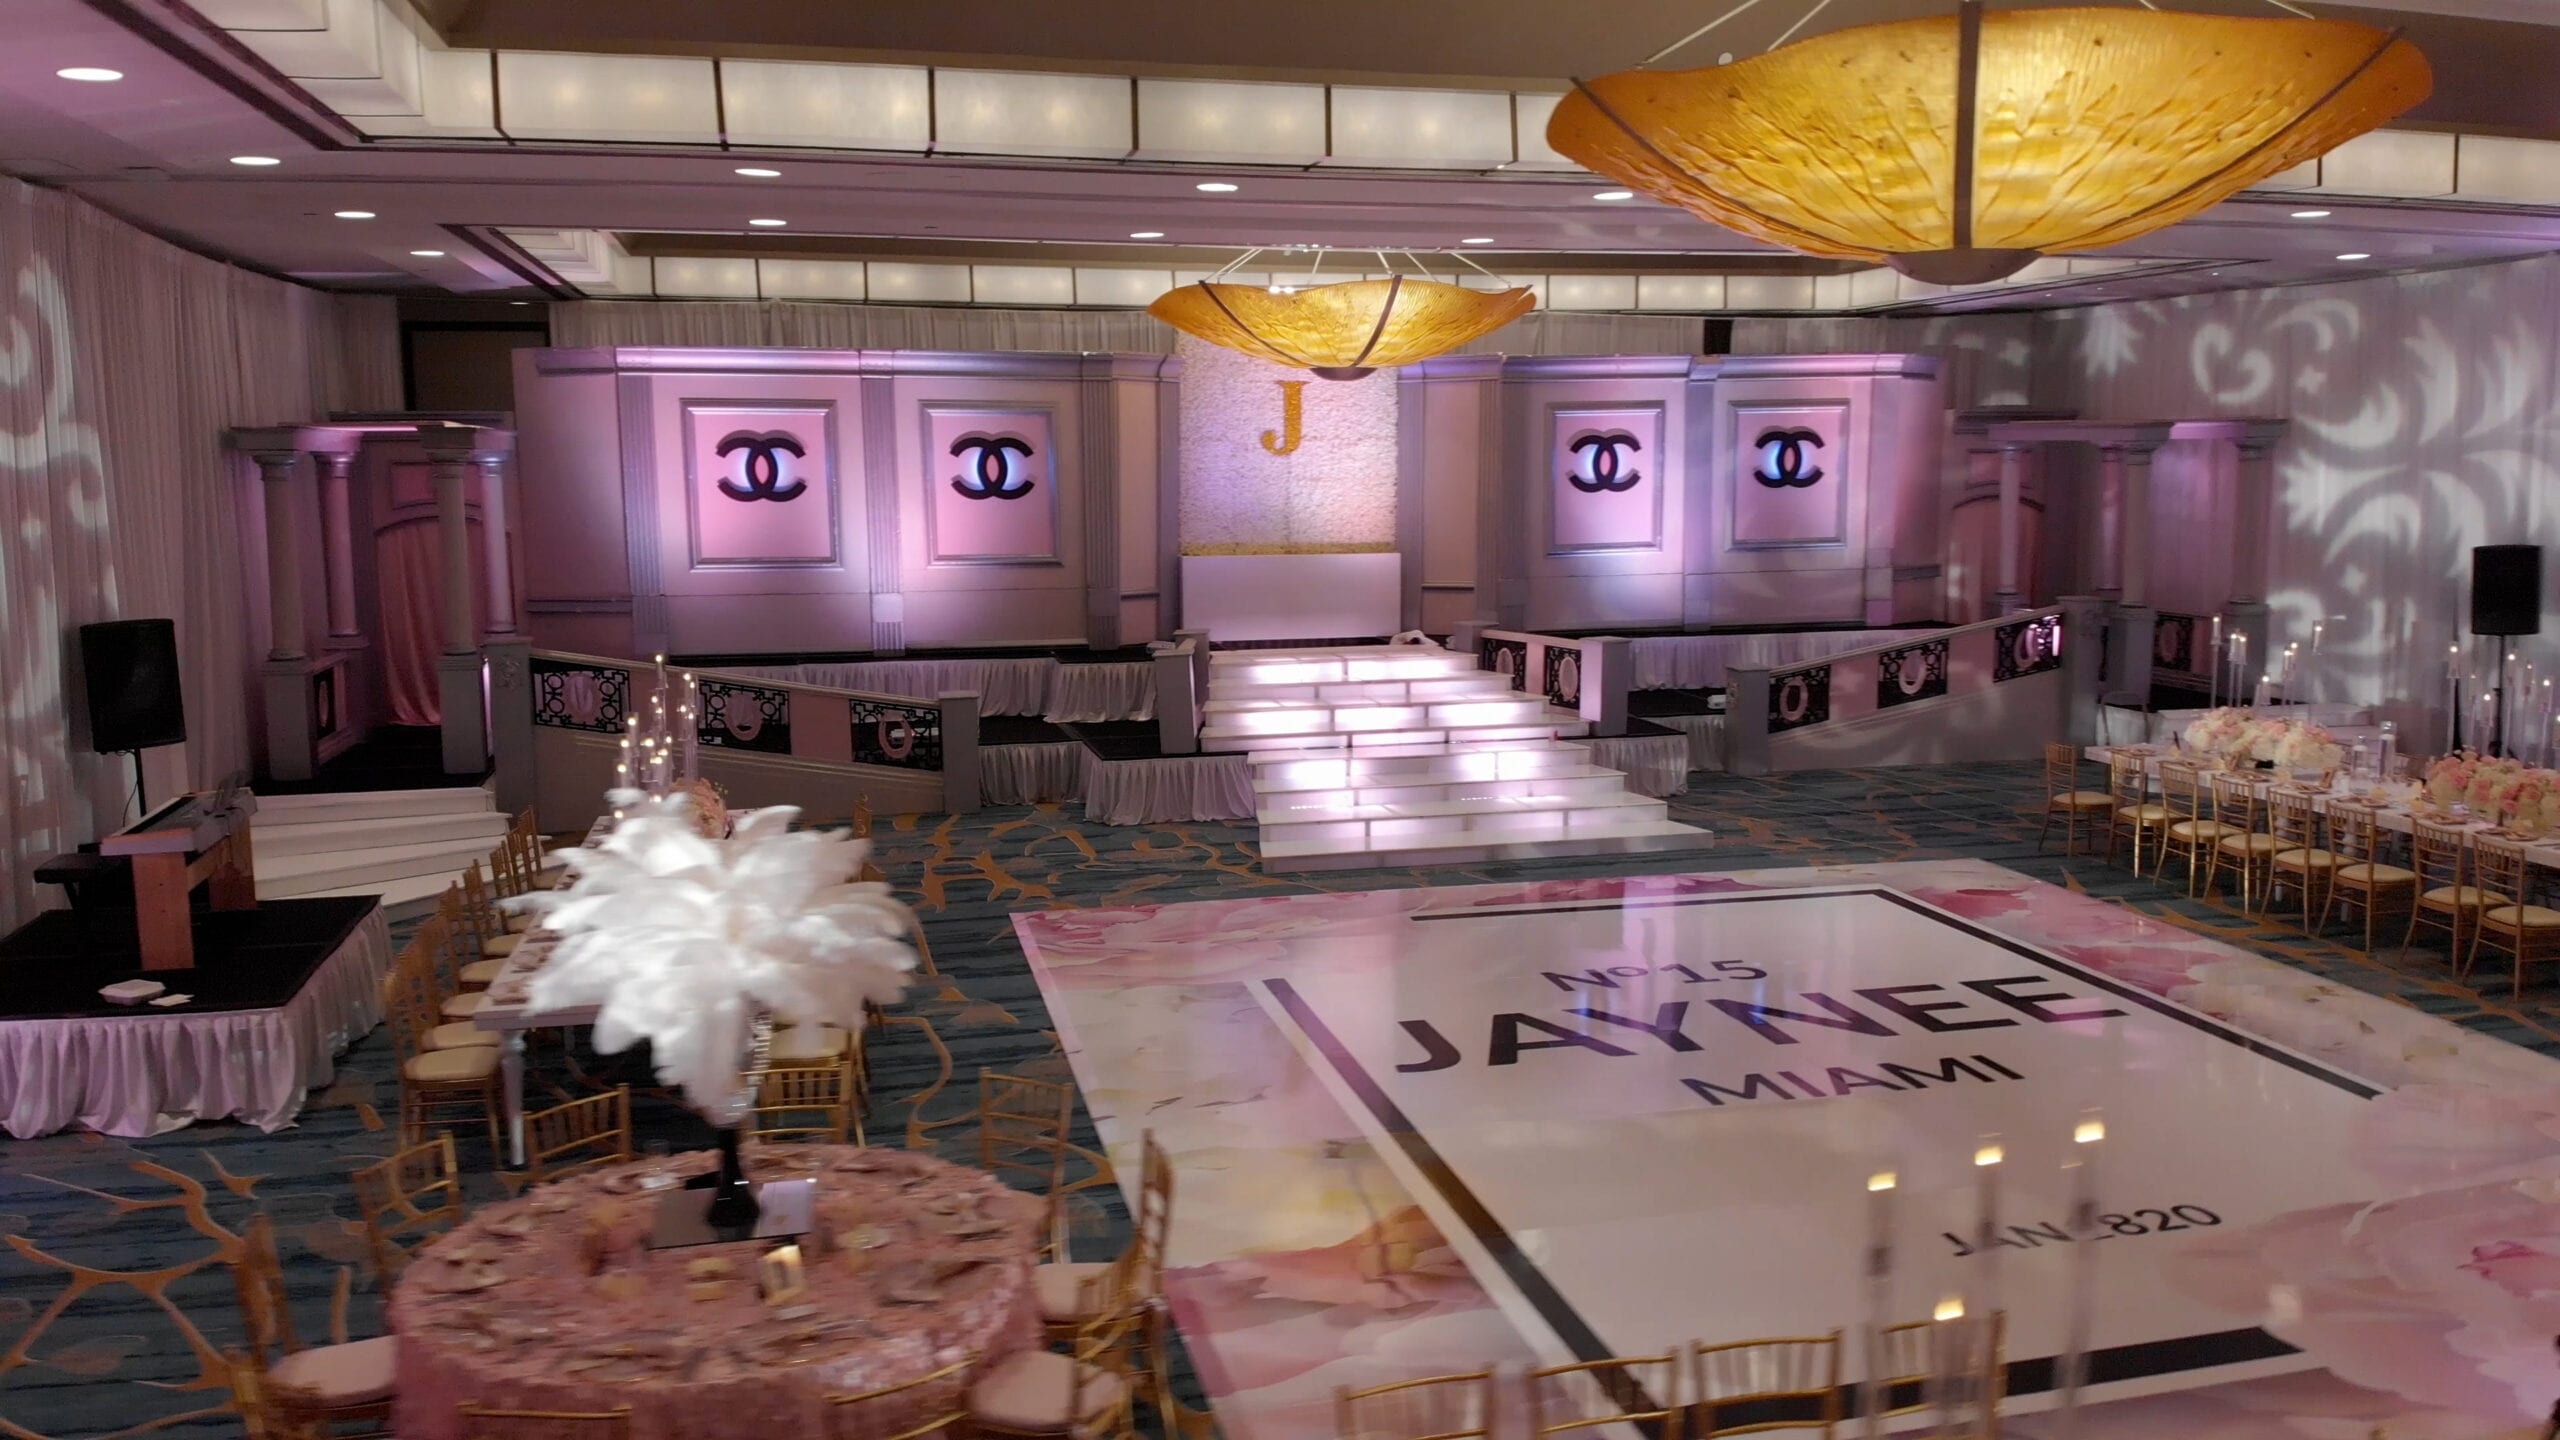 chanel themed stage and dance floor